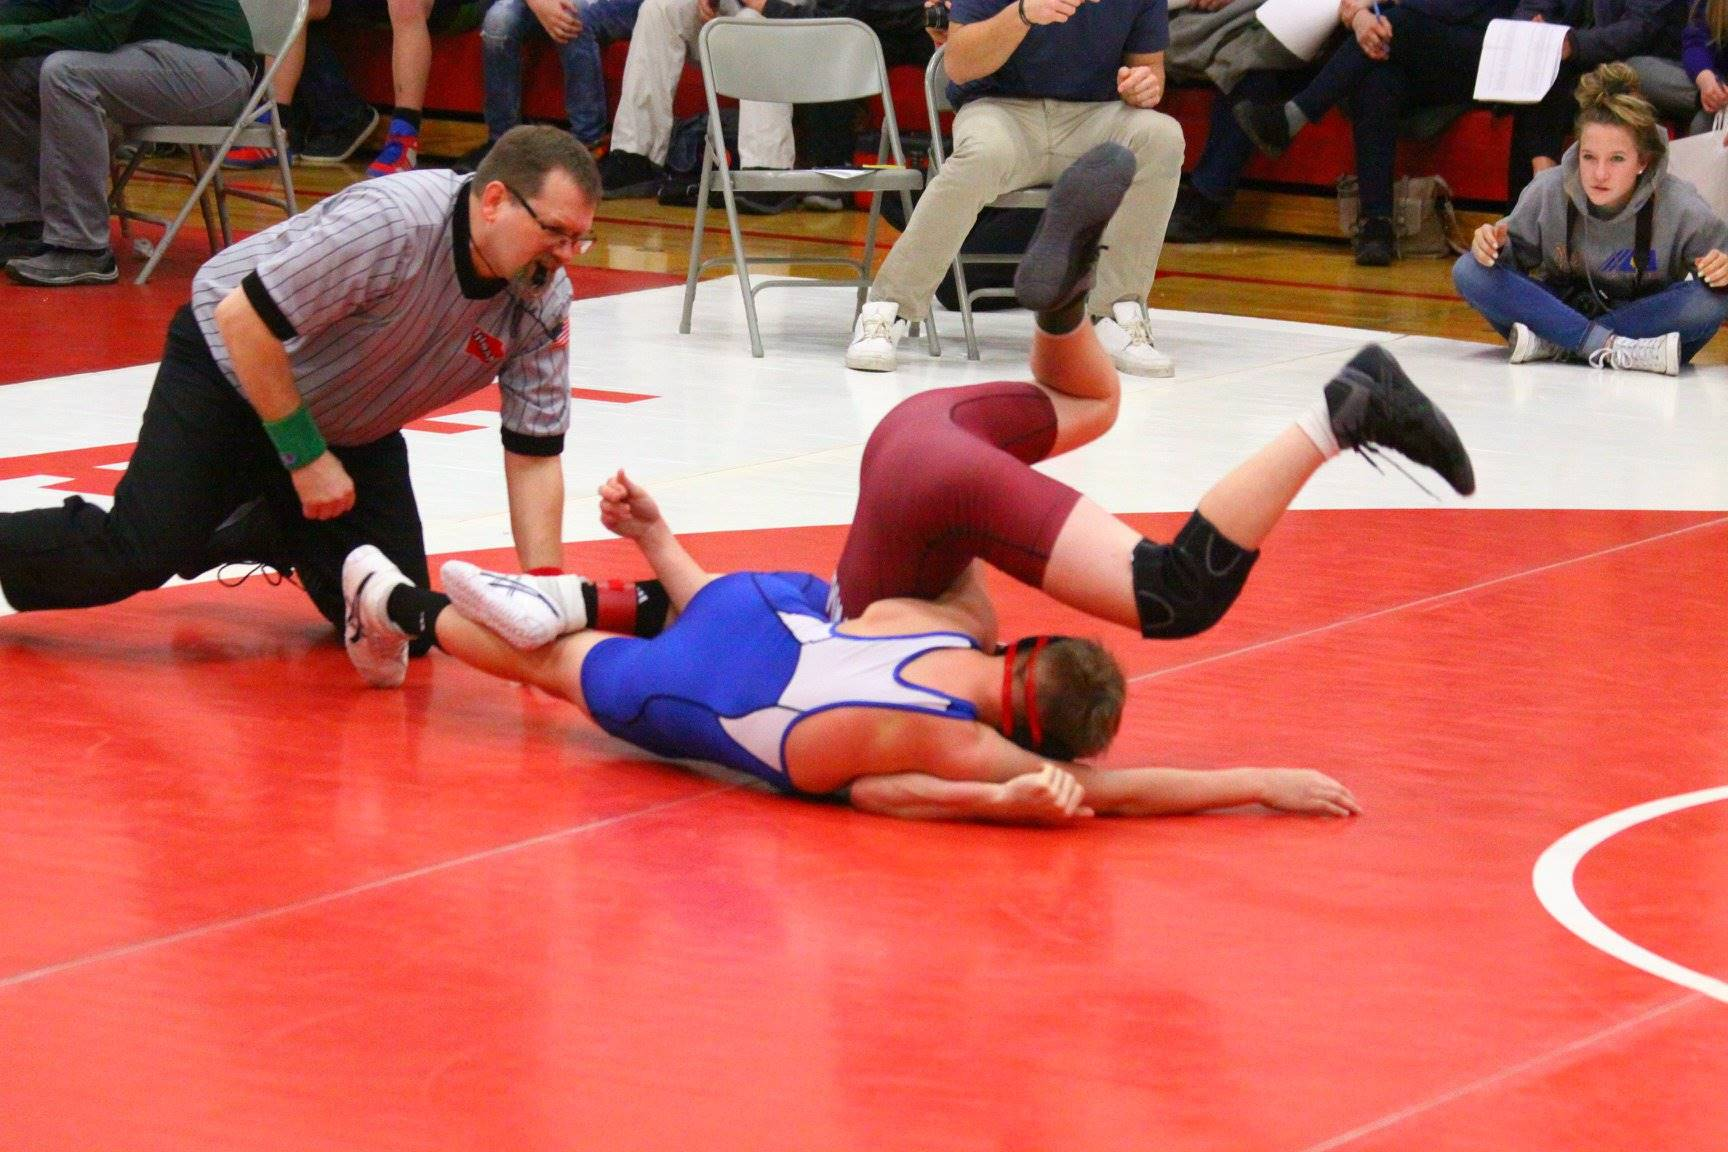 Two boys wrestling at a wrestling meet